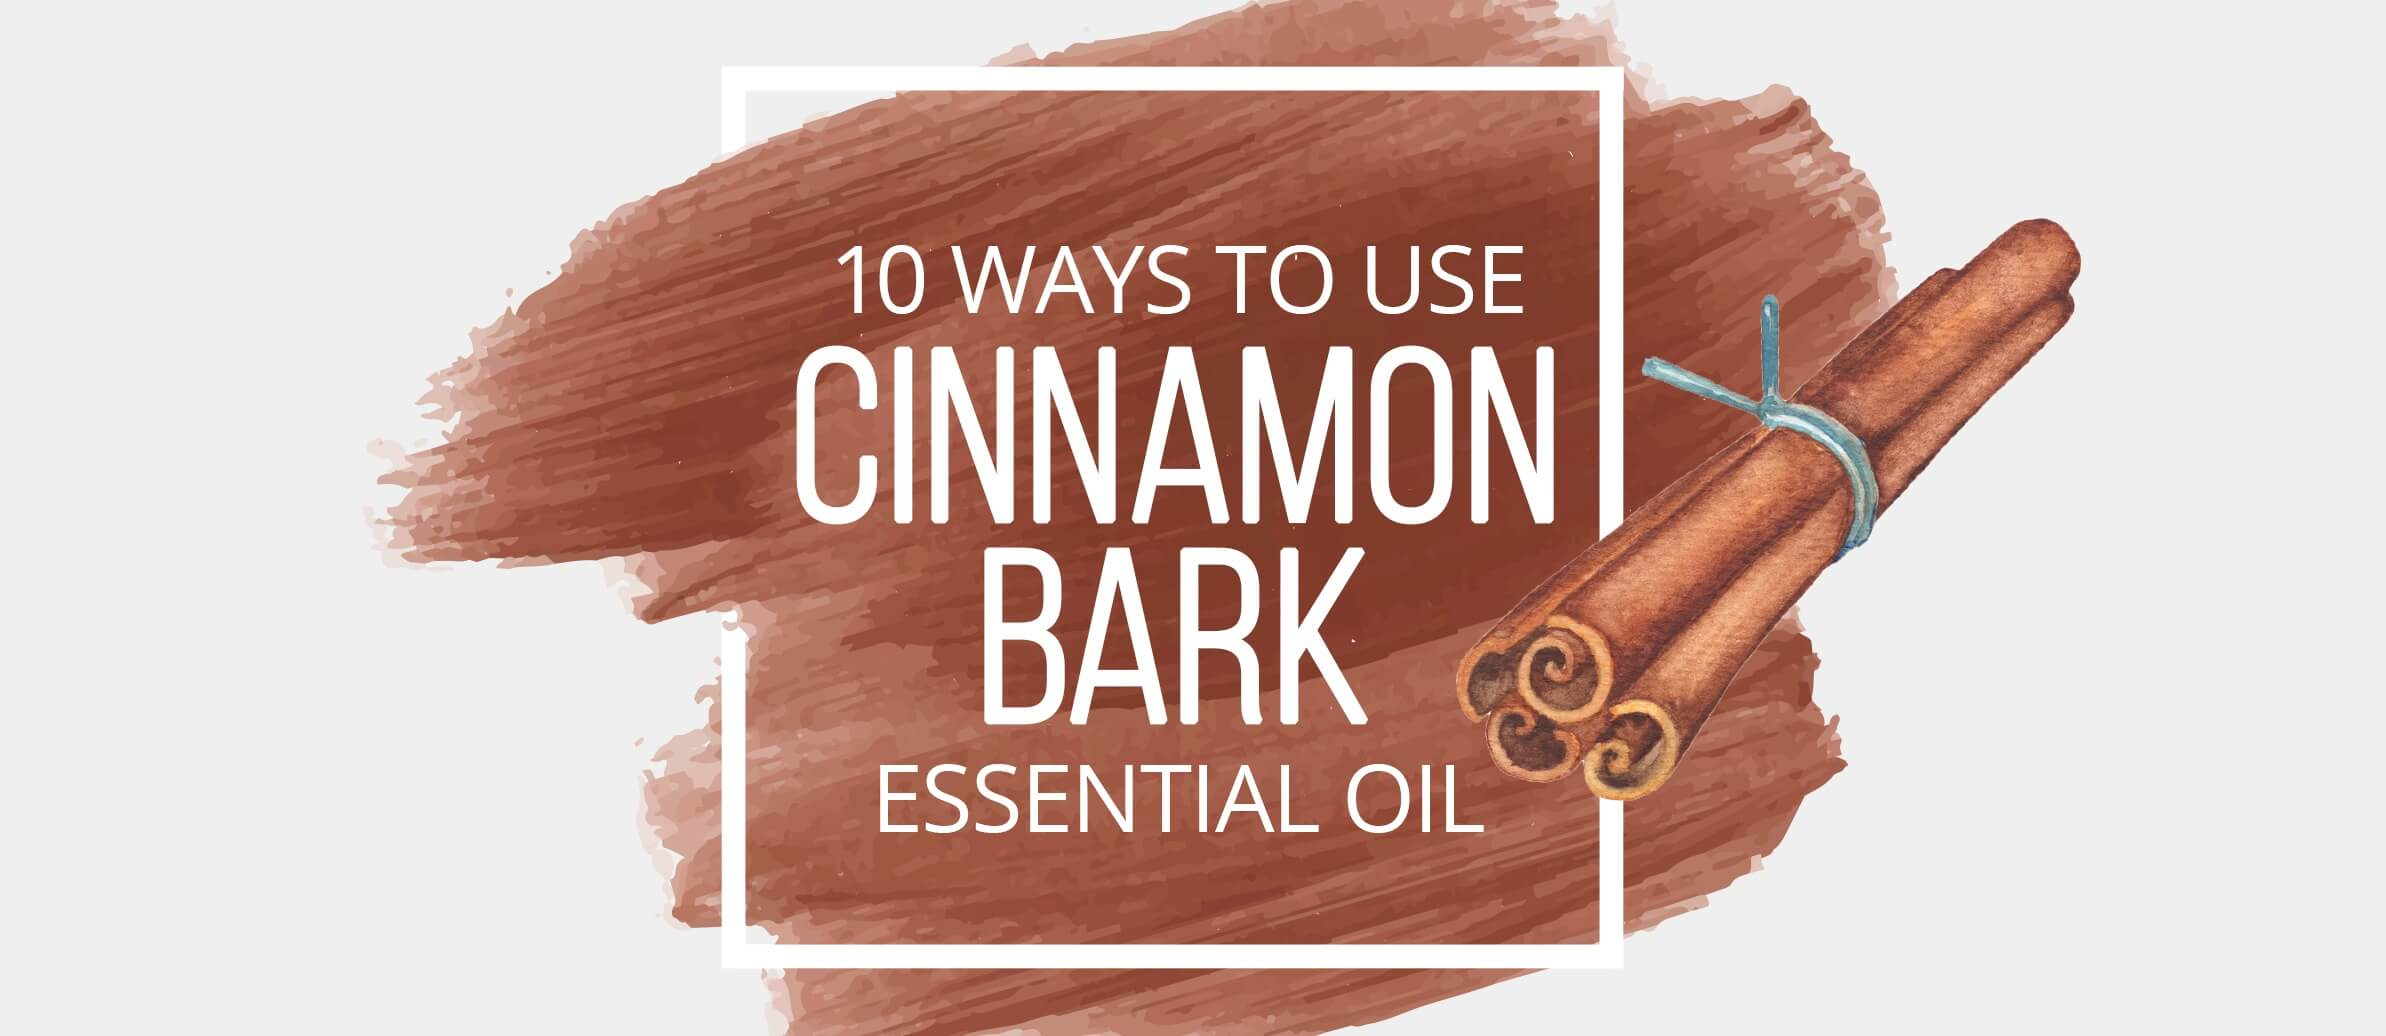 10 Ways to Use Cinnamon Bark - Lindsey Elmore